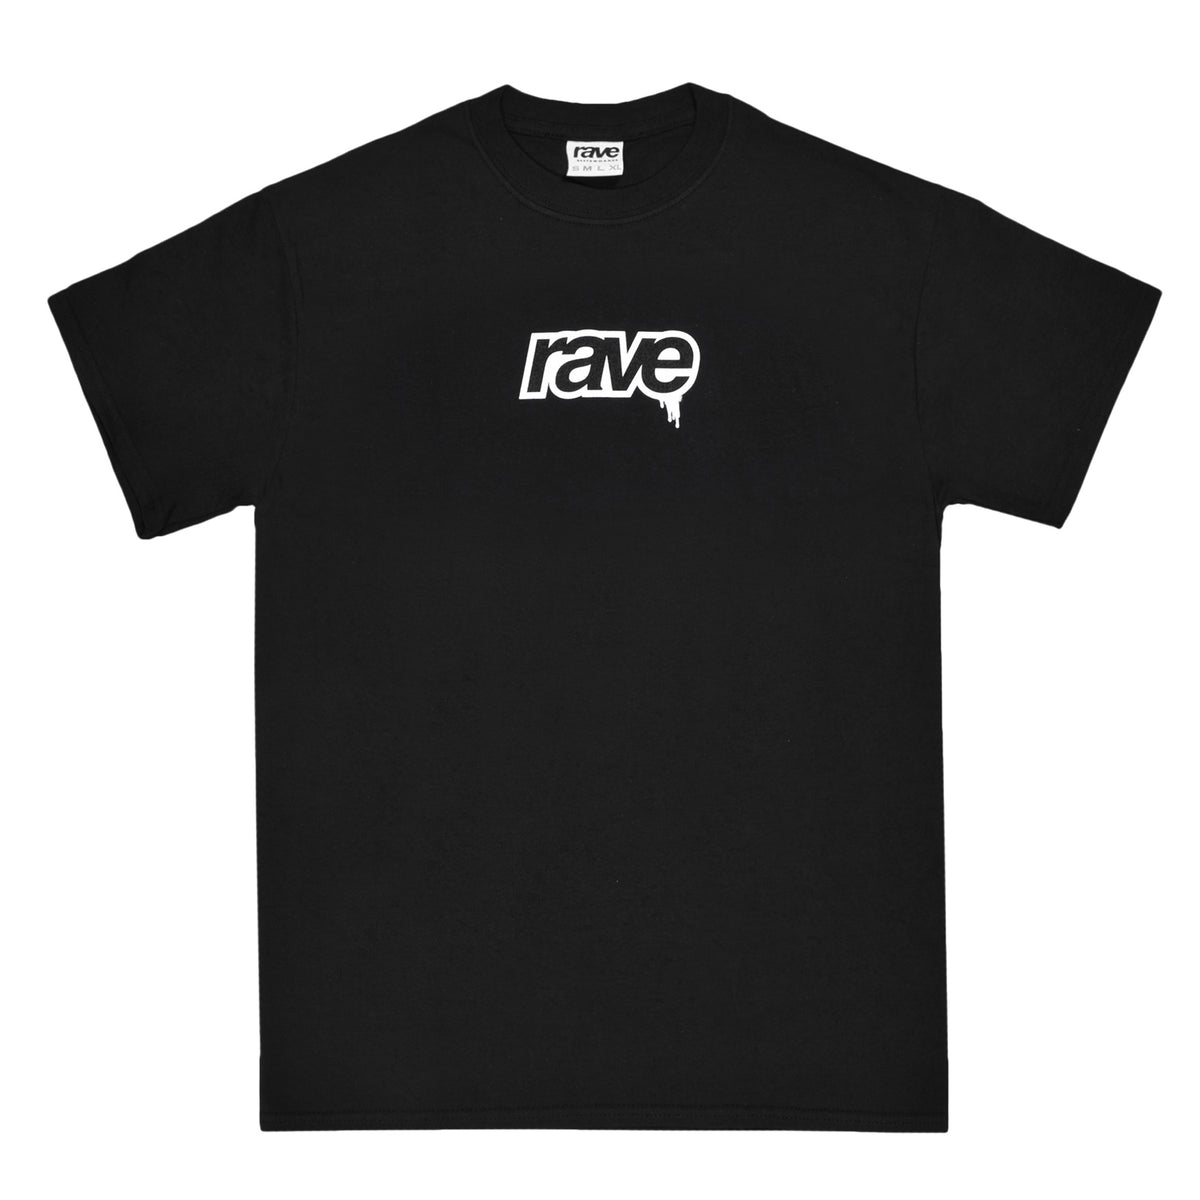 DROPS black tee - RAVE skateboards